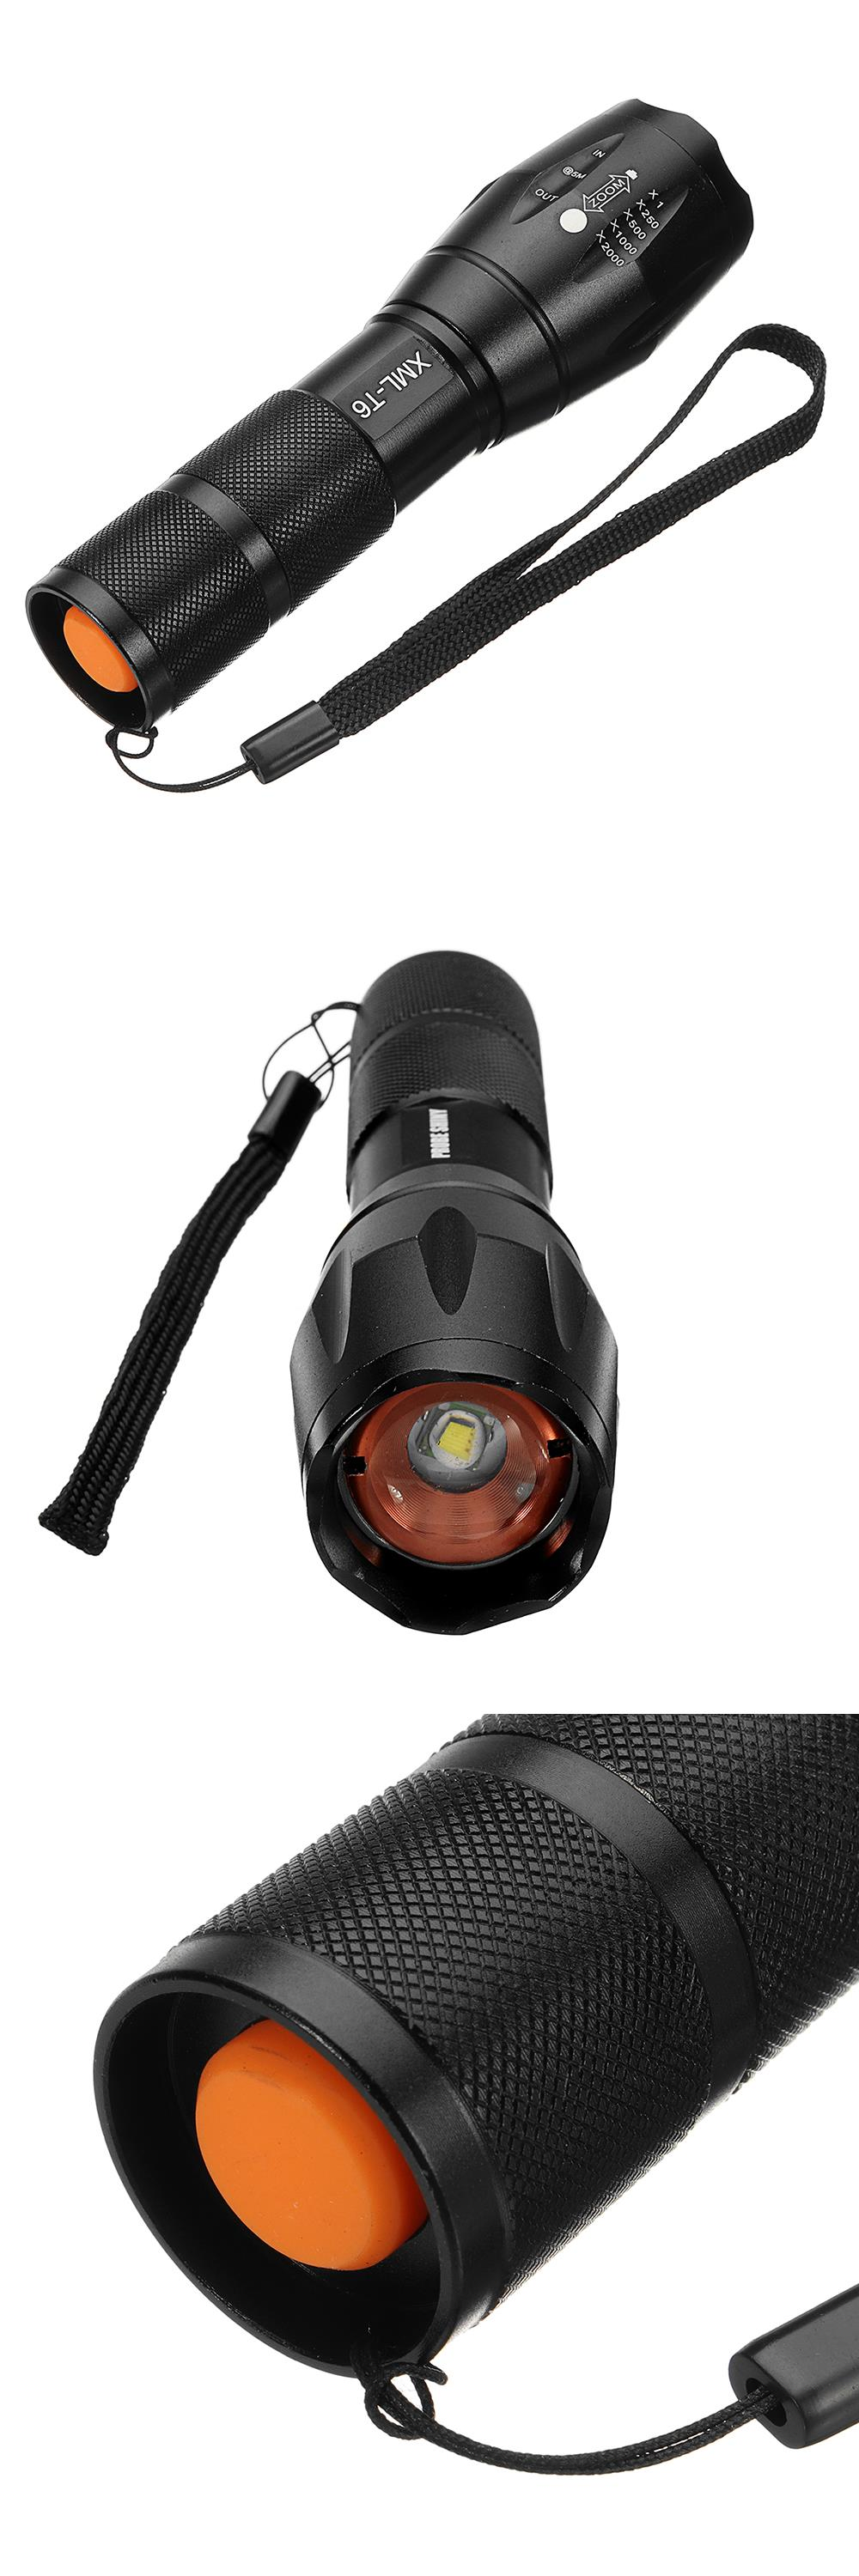 XANES A100 T6 800Lumens 5Modes Brightness Zoomable Tactical LED Flashlight Suit & Removable Bicycle Light with Handlebar clip